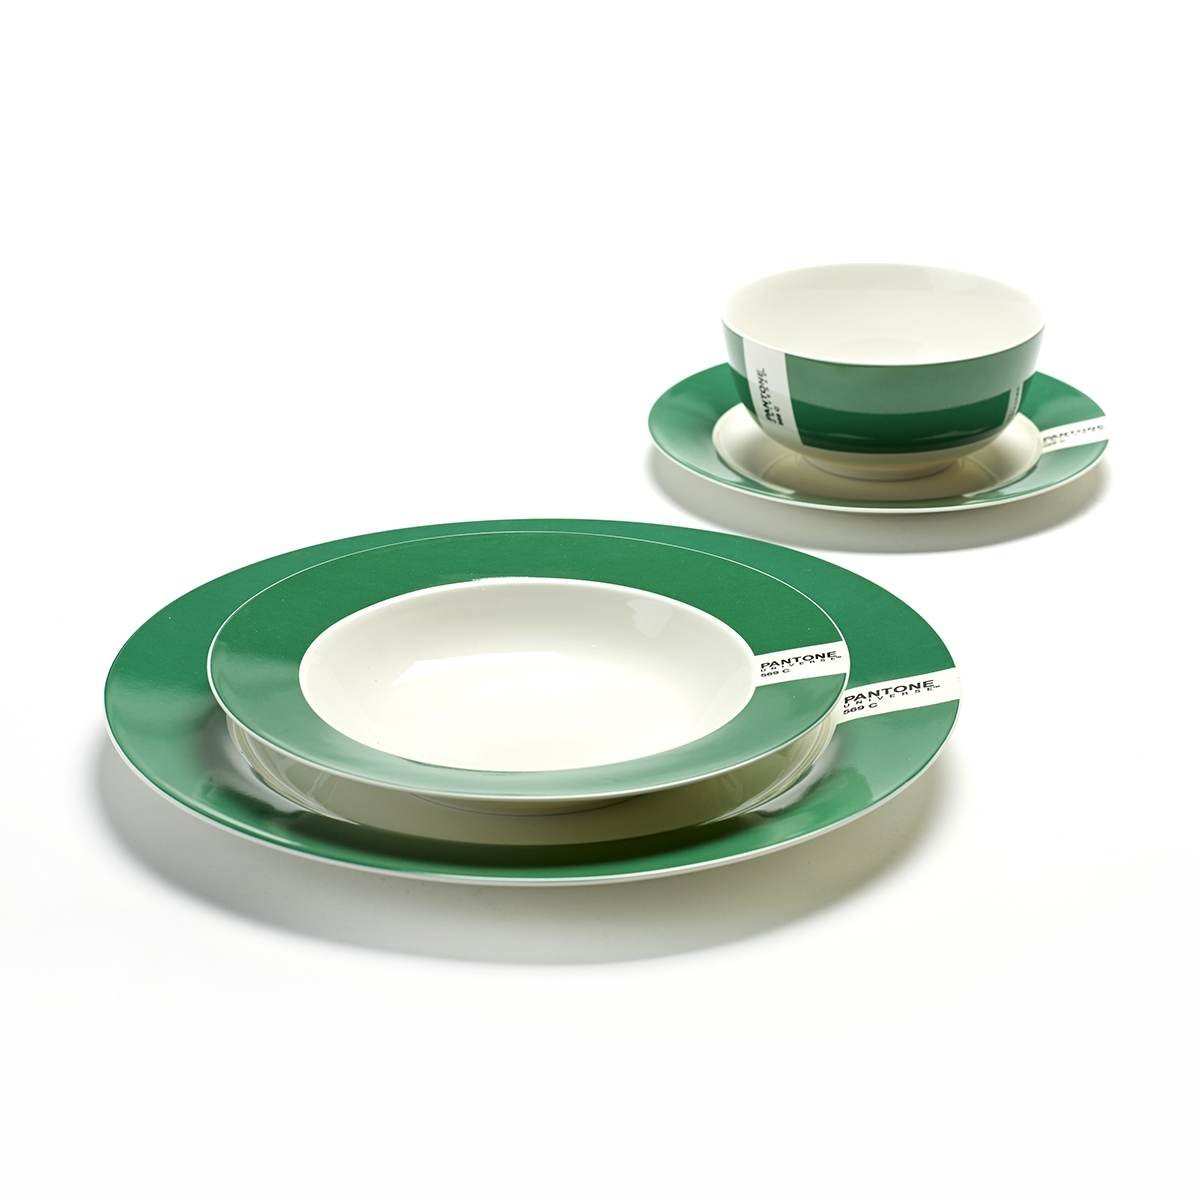 assiette pantone vert fonc serax en offre sp ciale sur zeeloft. Black Bedroom Furniture Sets. Home Design Ideas